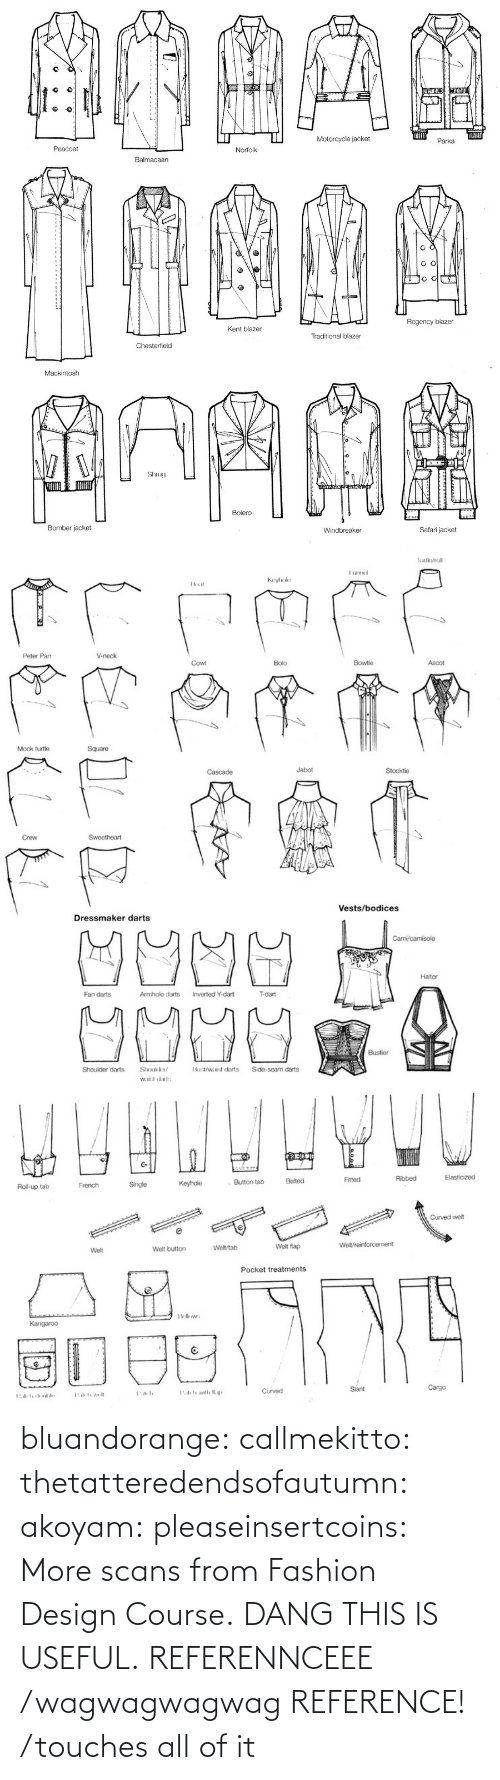 All Of: bluandorange:  callmekitto:  thetatteredendsofautumn:  akoyam:  pleaseinsertcoins:  More scans from Fashion Design Course.  DANG THIS IS USEFUL.  REFERENNCEEE  /wagwagwagwag REFERENCE!  /touches all of it